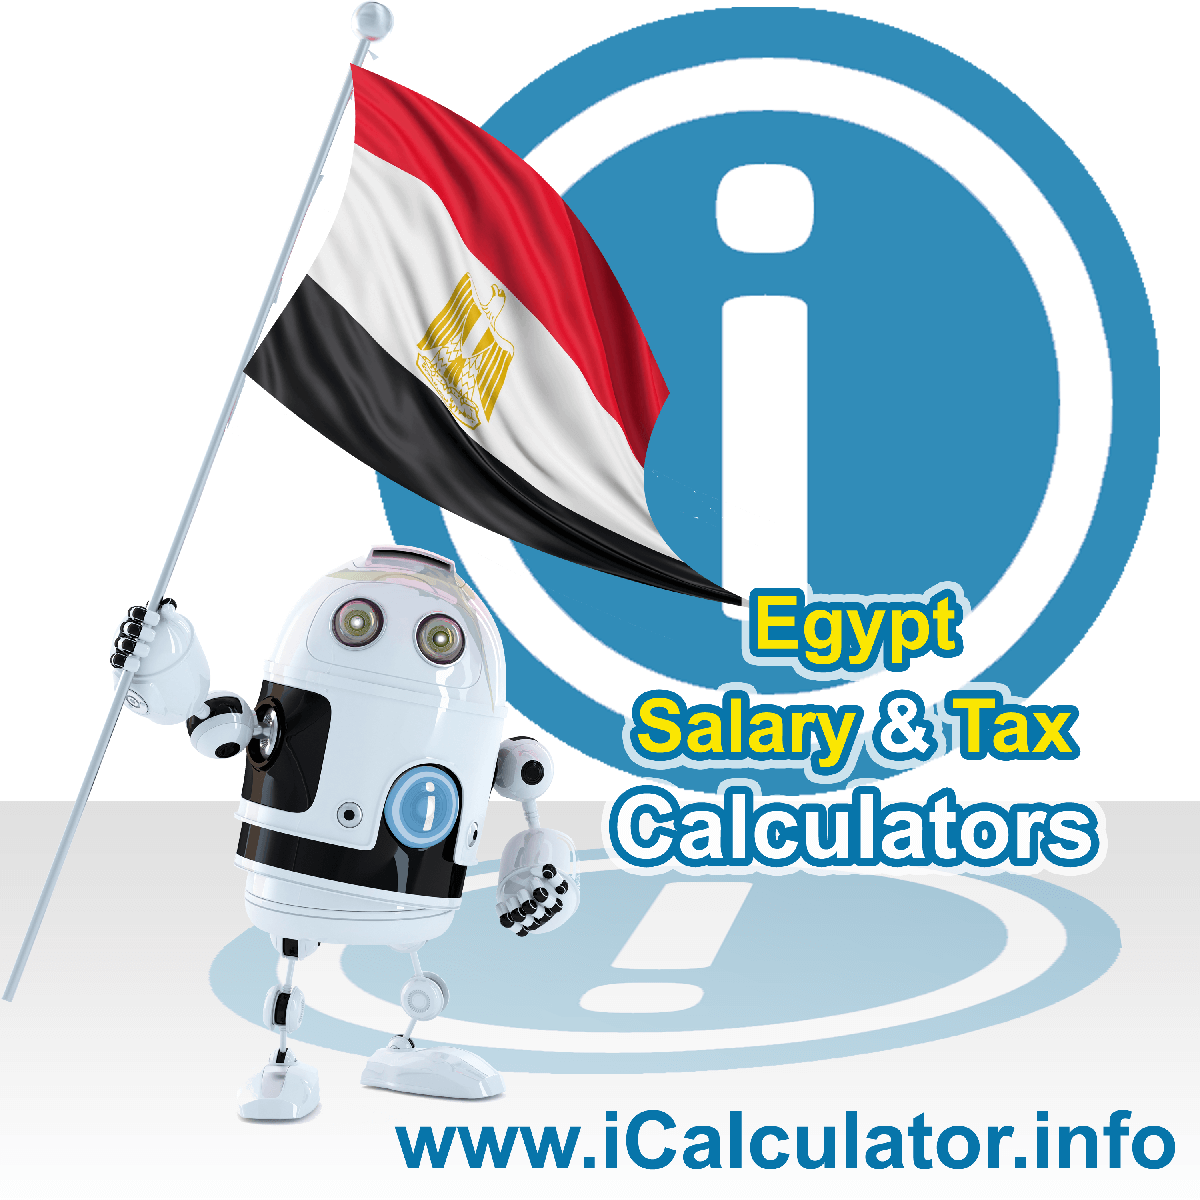 Egypt Salary Calculator. This image shows the Egyptese flag and information relating to the tax formula for the Egypt Tax Calculator